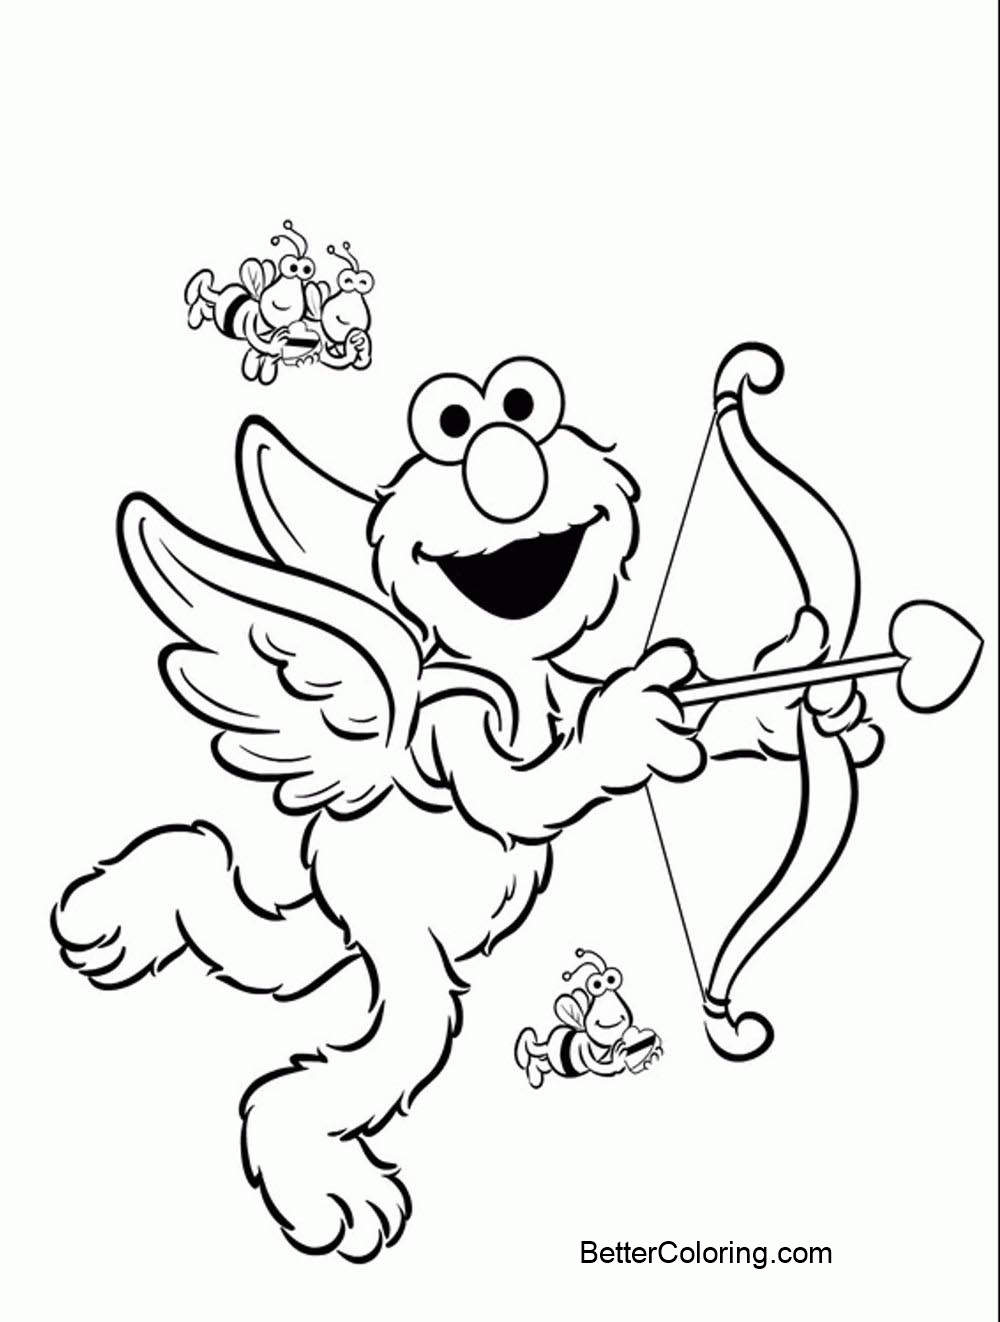 Free Cupid Elmo Coloring Pages printable